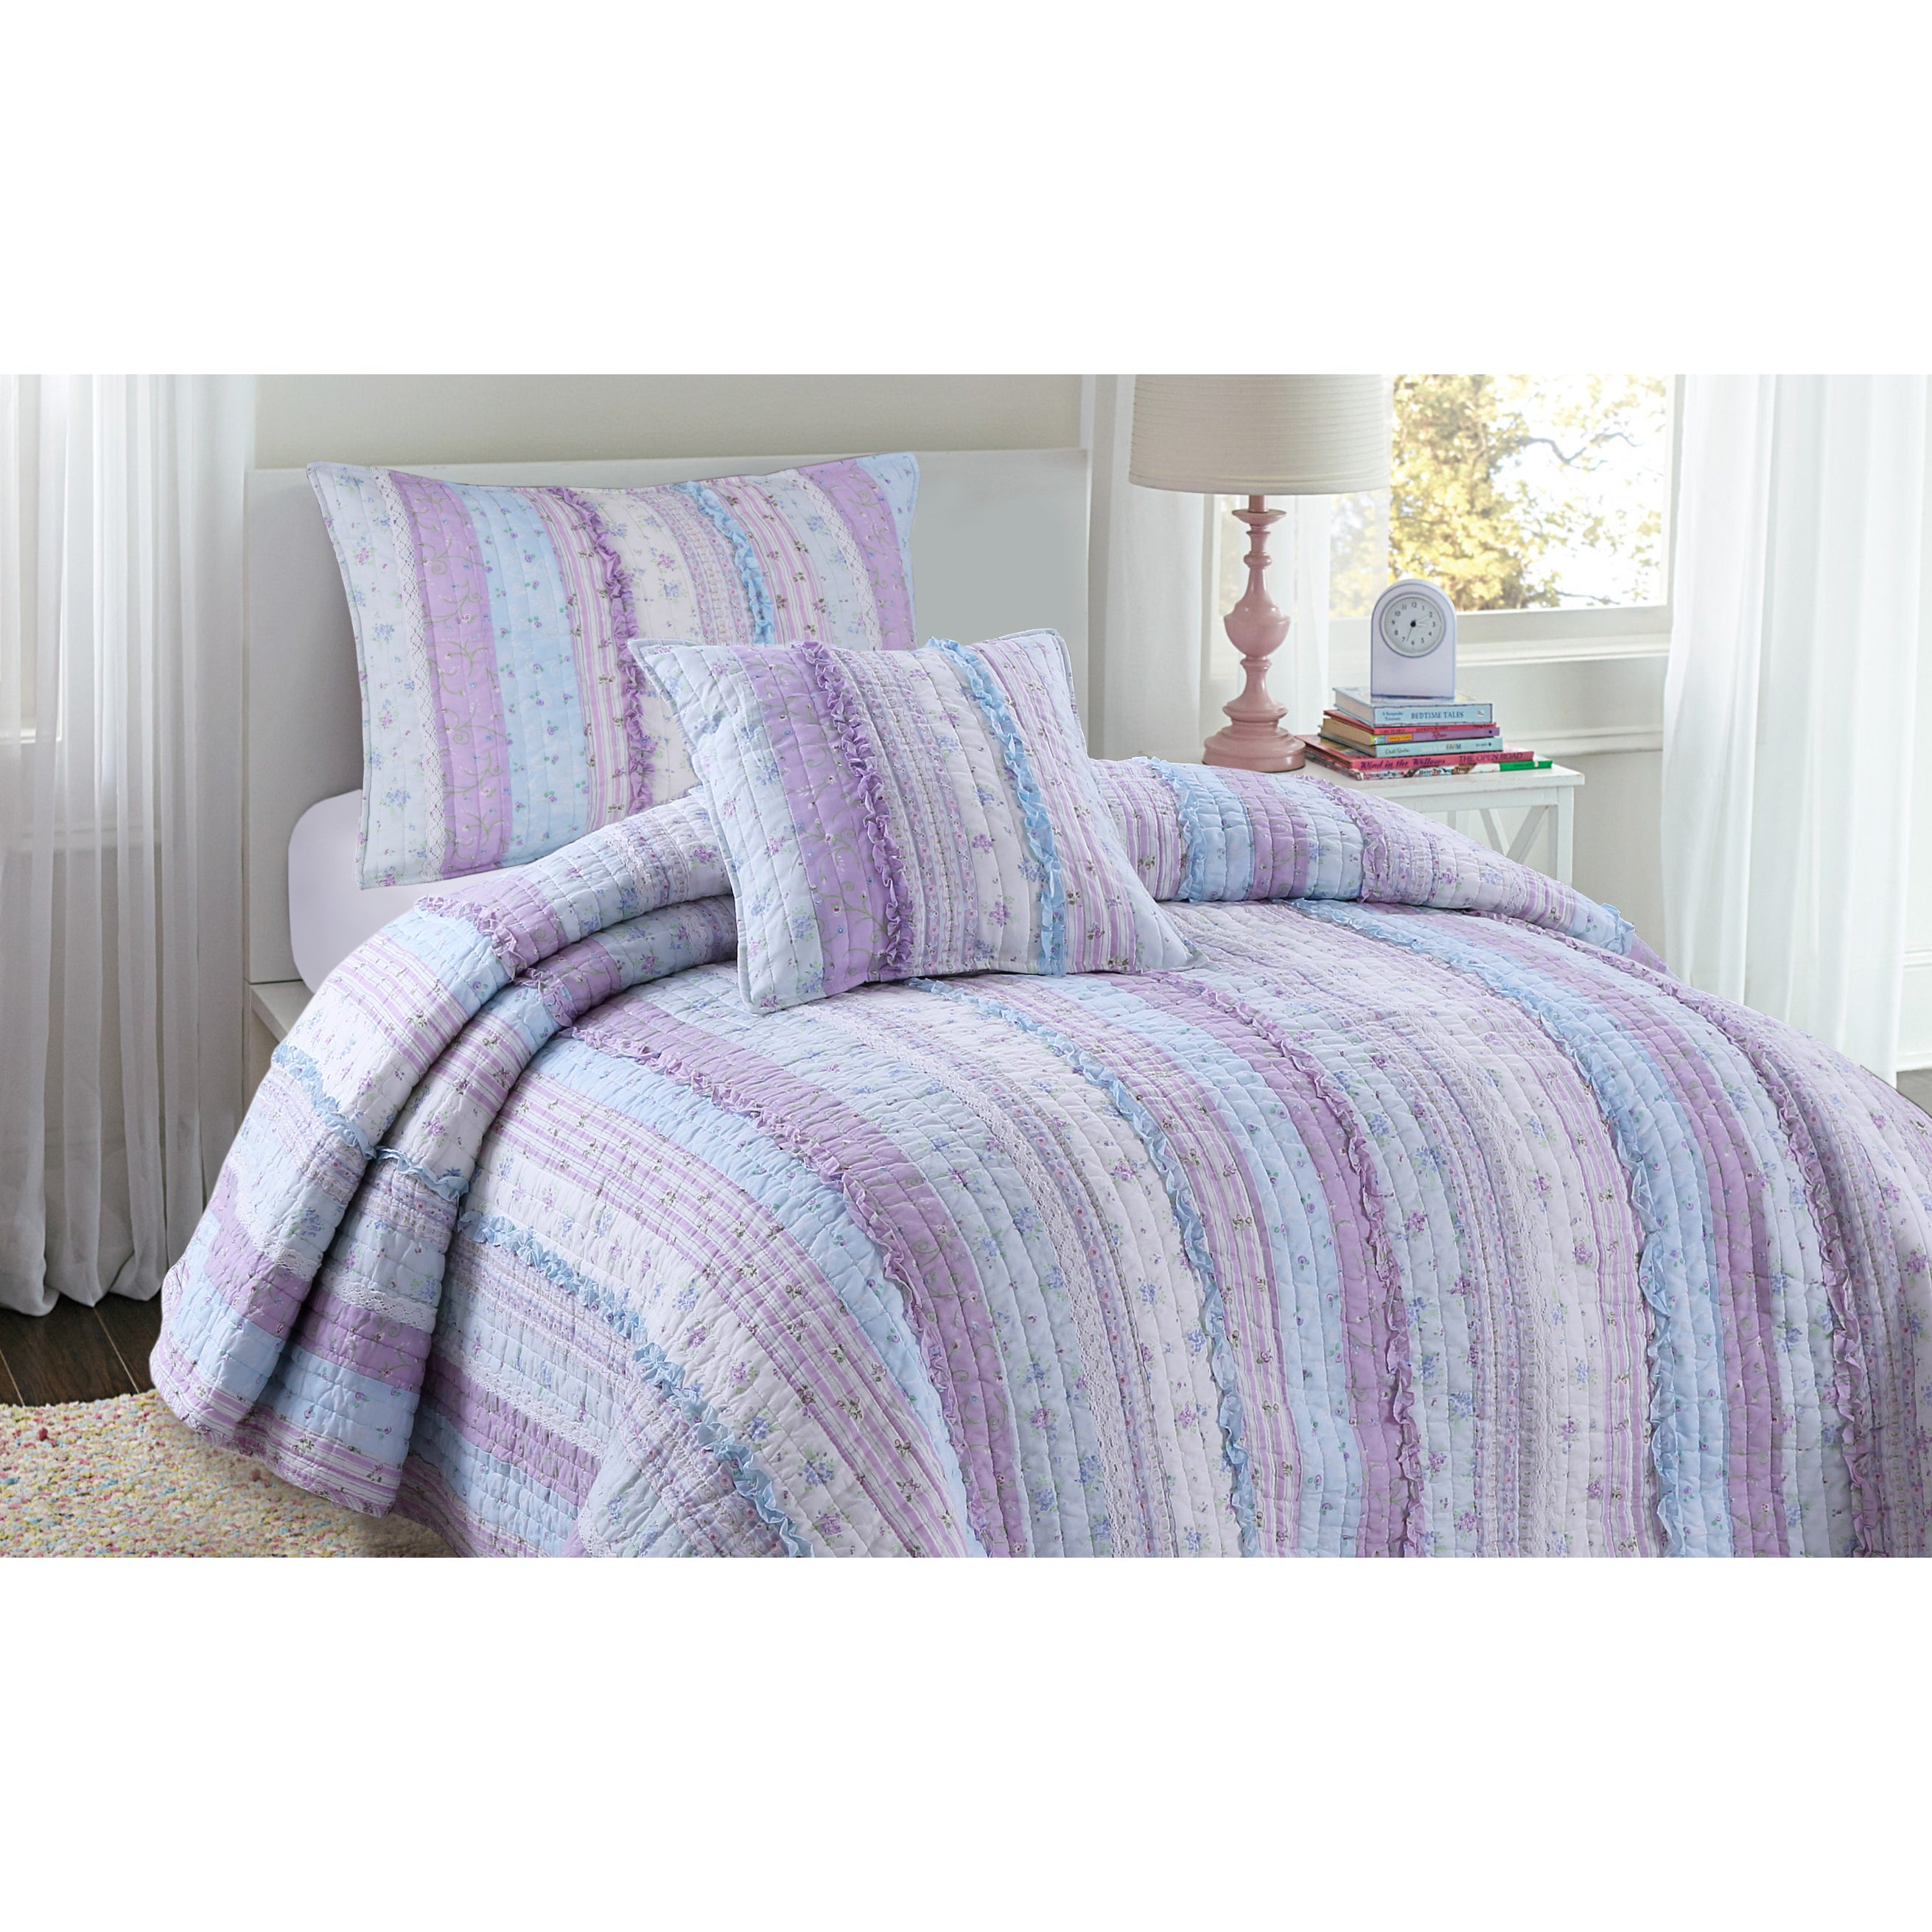 betty set products quilted quilt myhouse cover